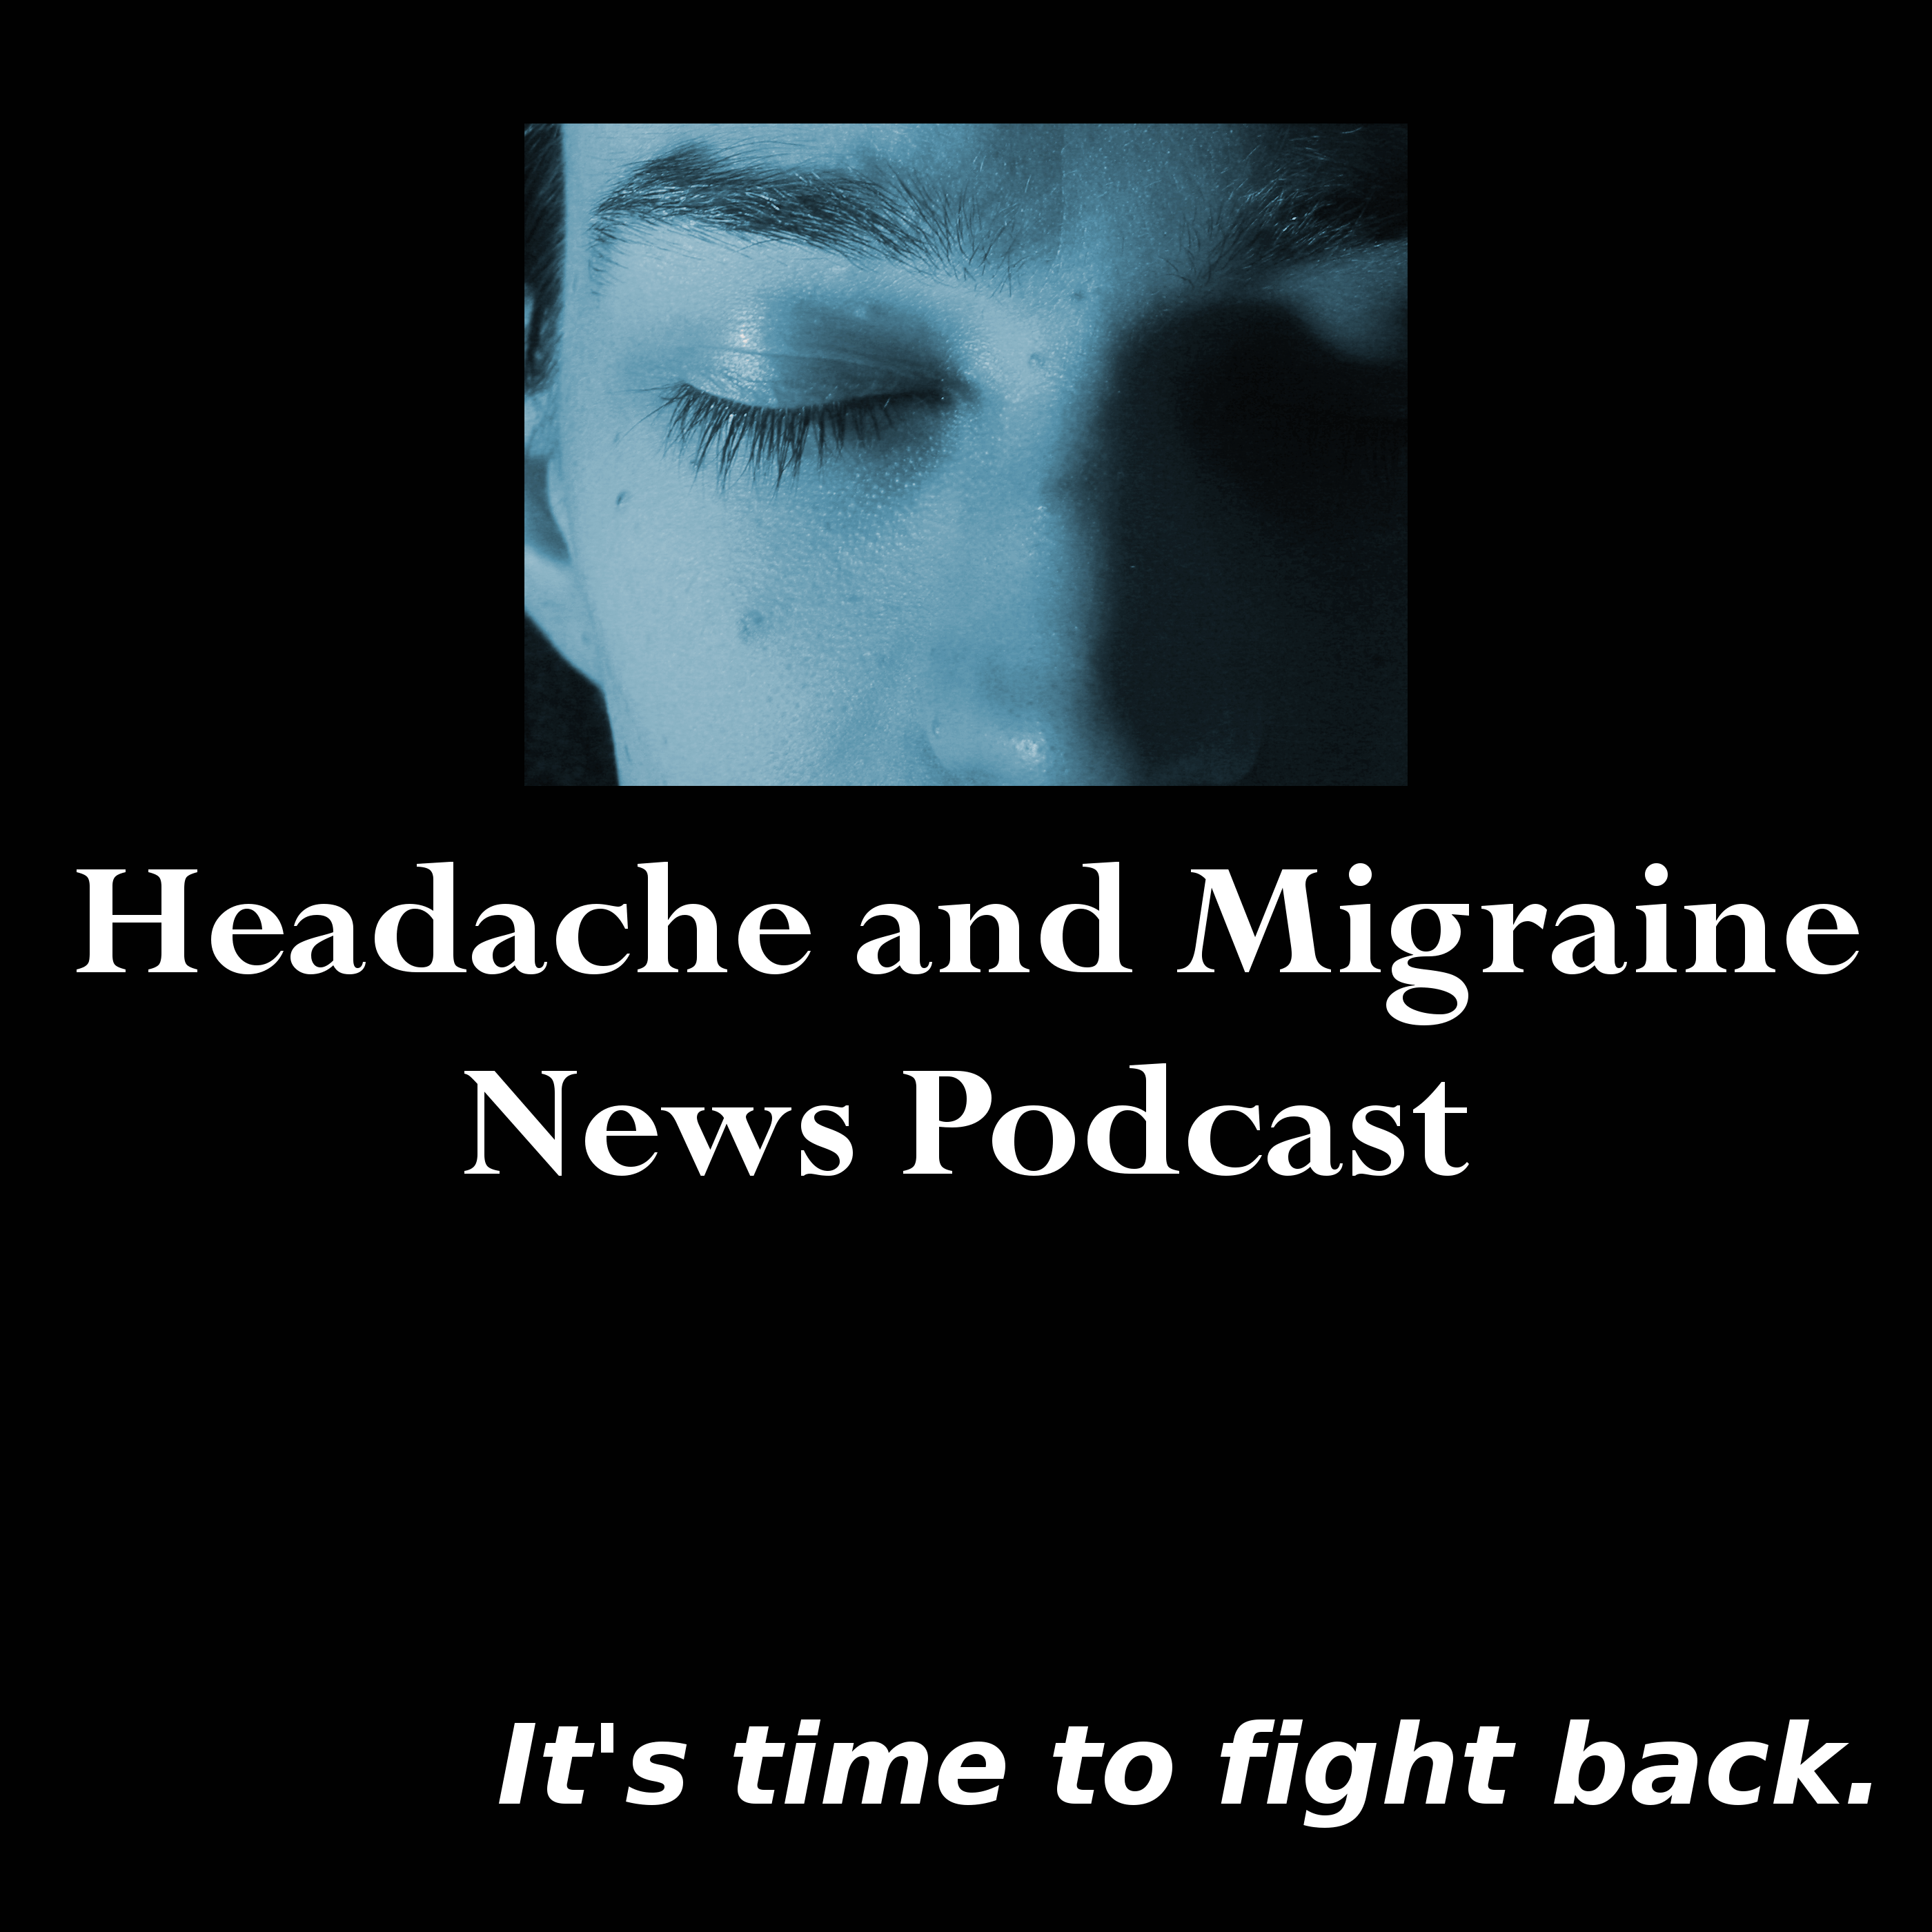 podcast – Headache and Migraine News